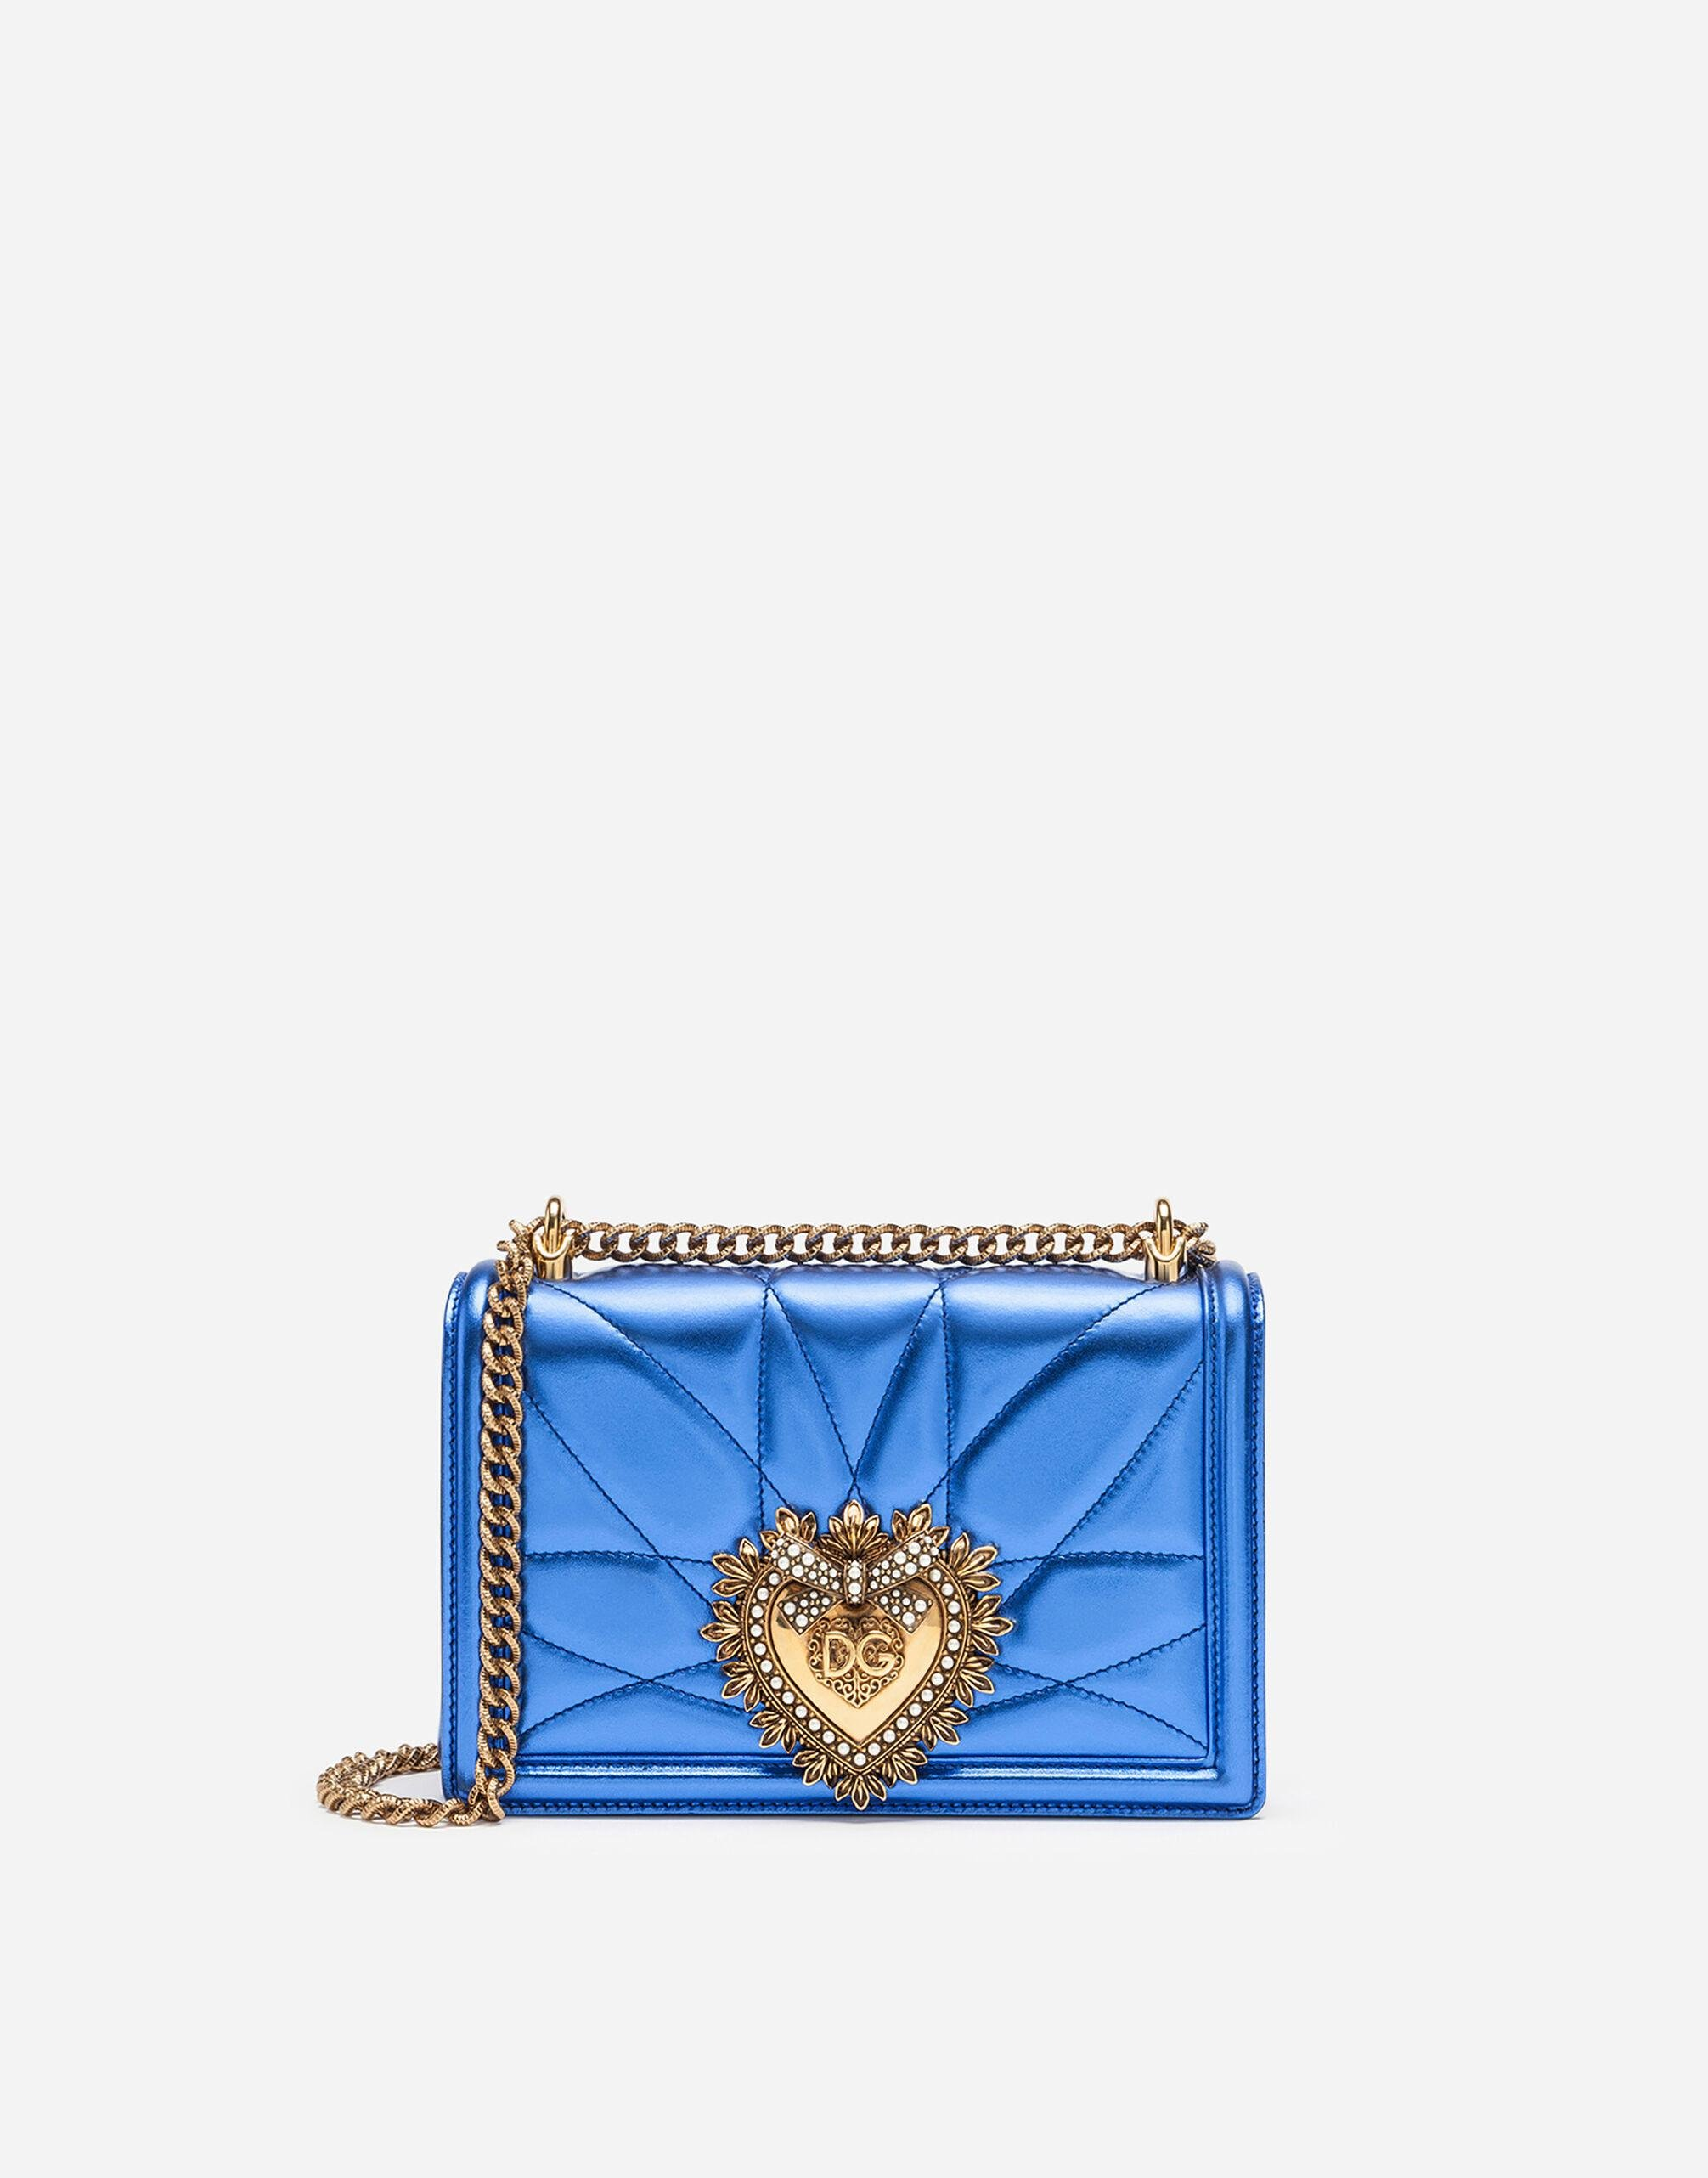 Medium Devotion bag in quilted nappa mordoré